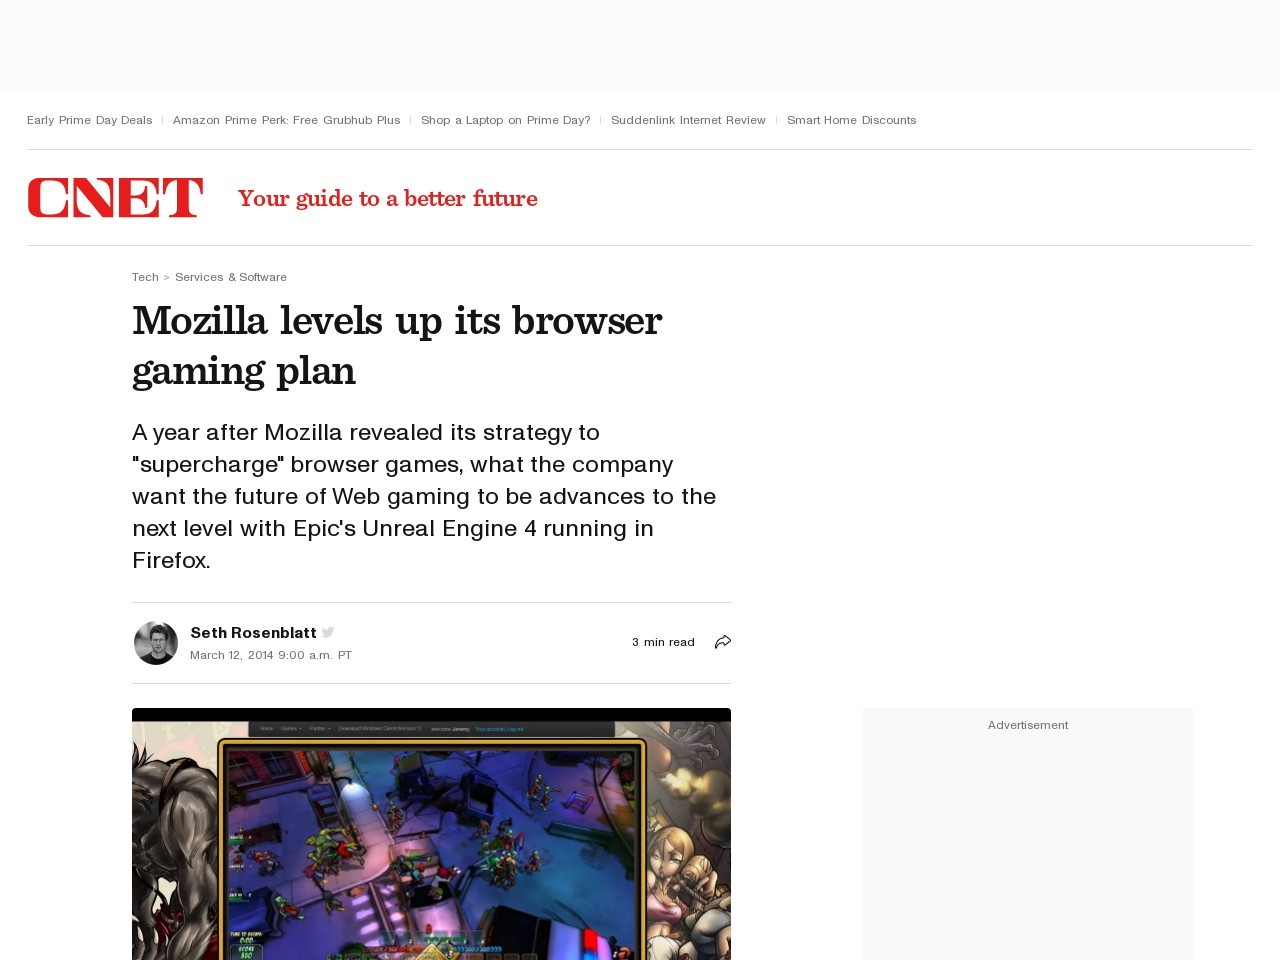 Mozilla levels up its browser gaming plan